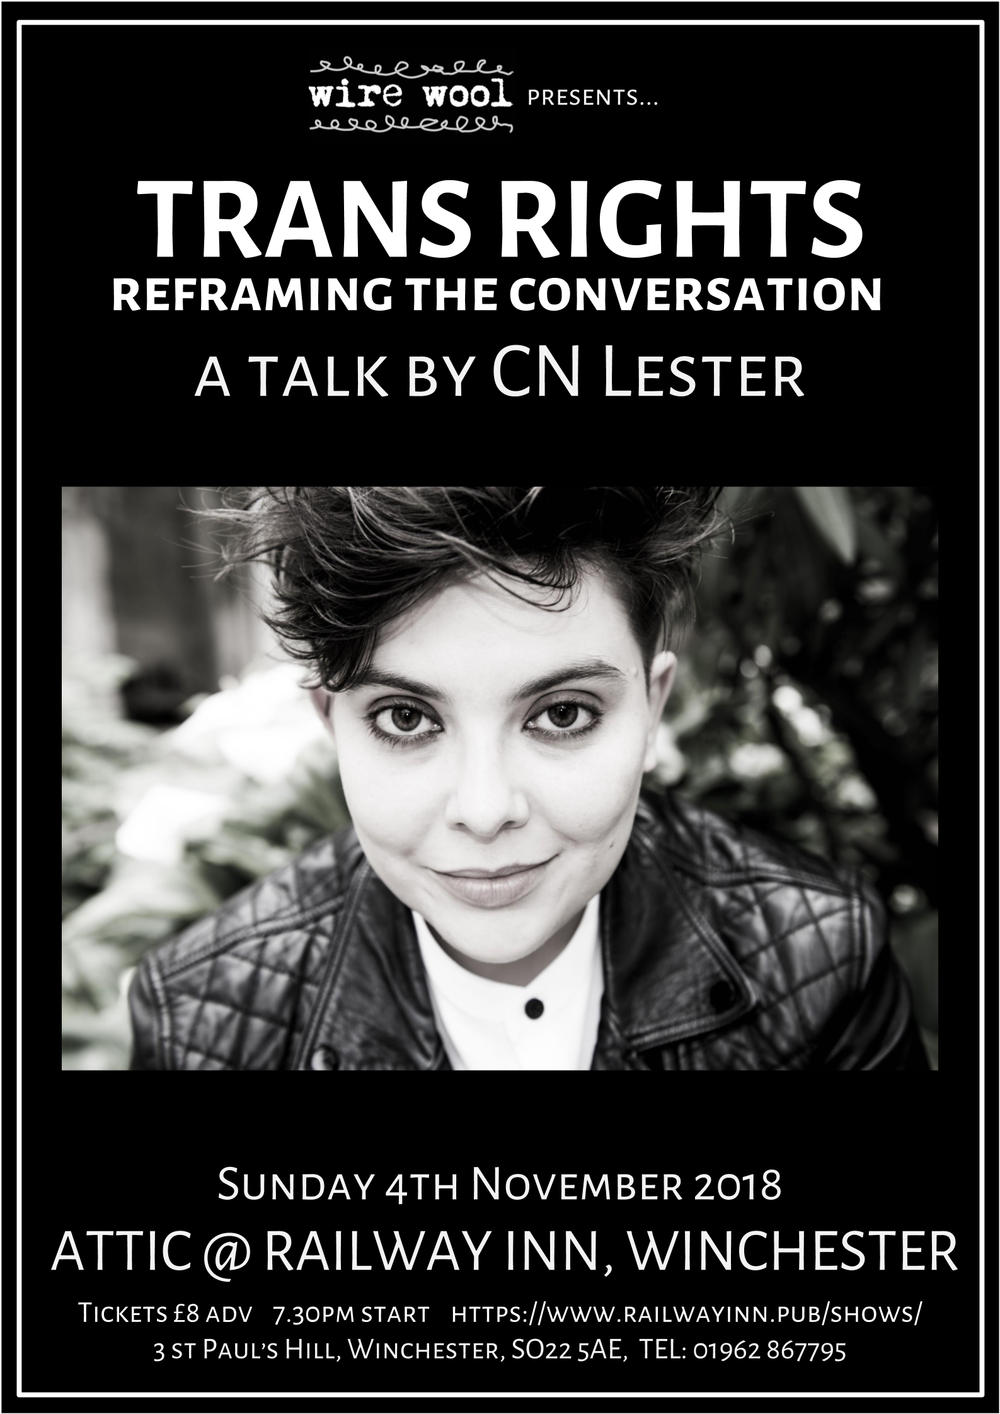 Trans Rights - Reframing the Conversation: a talk by CN Lester Sunday November 4 2018